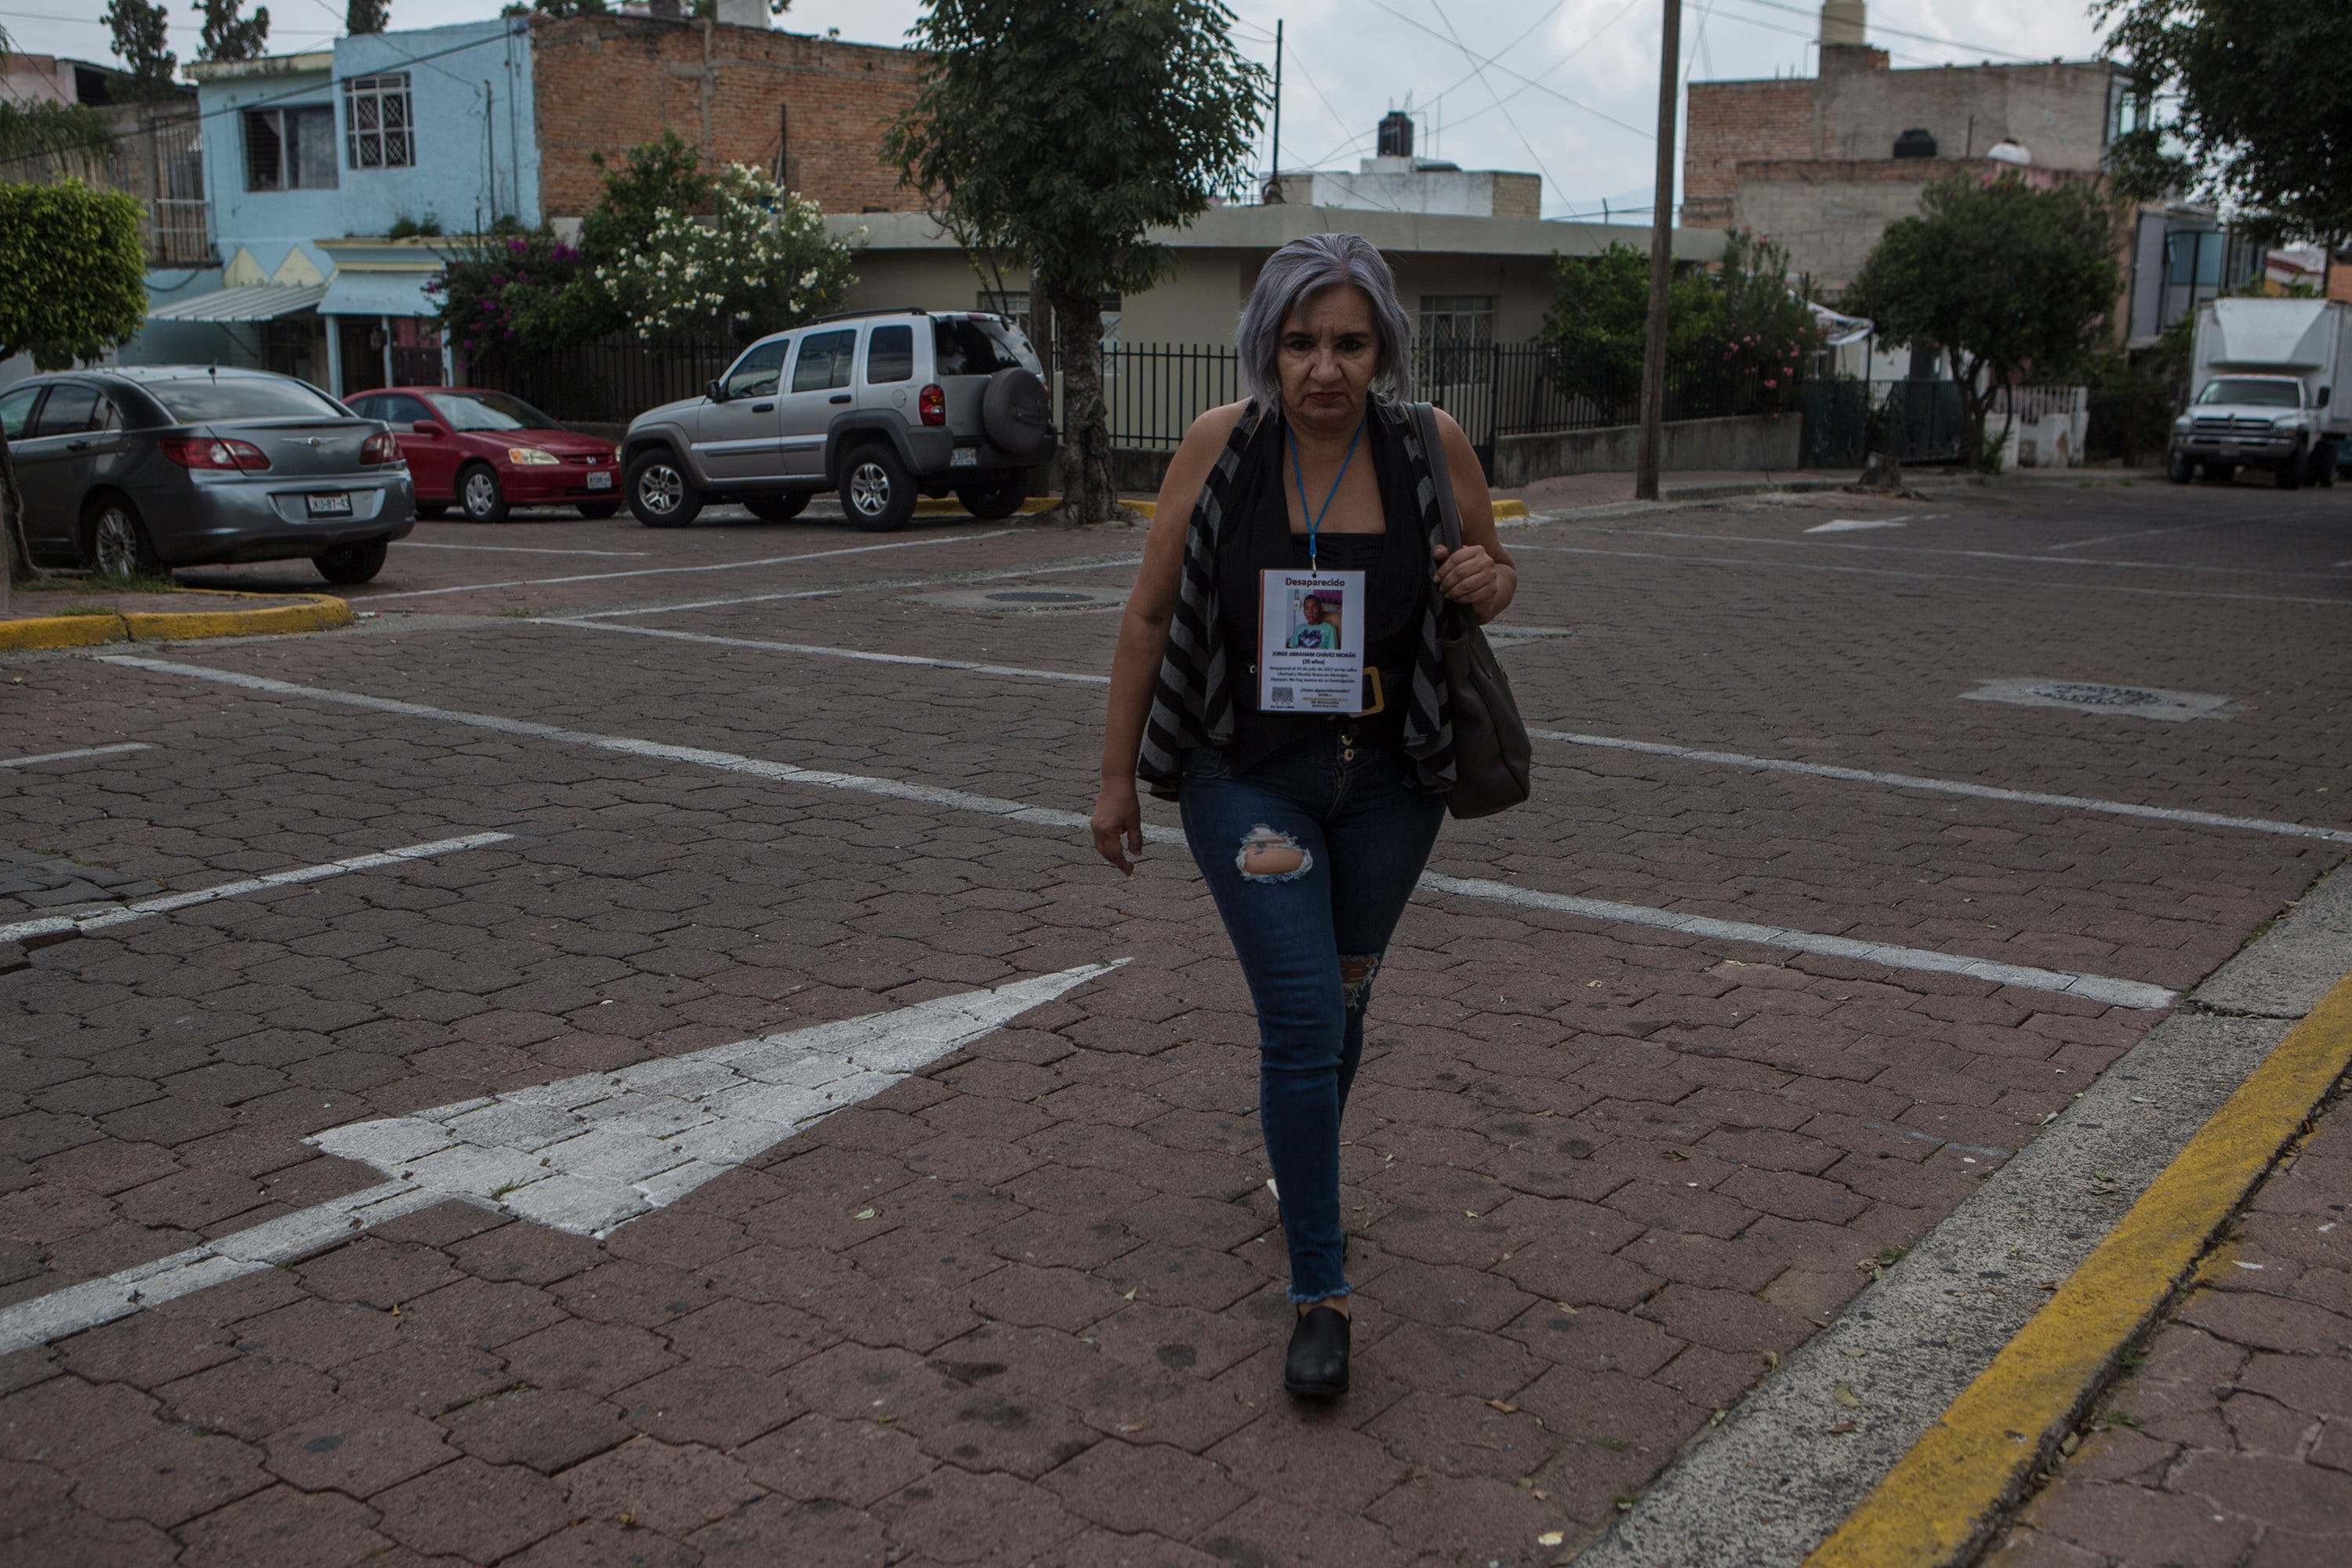 Silvia Morán walks on Libertad Street where her son Jorge Abraham Chávez Morán was taken by an armed command on July 19, 2017, in the city of Zapopan, Jalisco. More than two years after his disappearance, Silvia still has no information about his whereabouts.